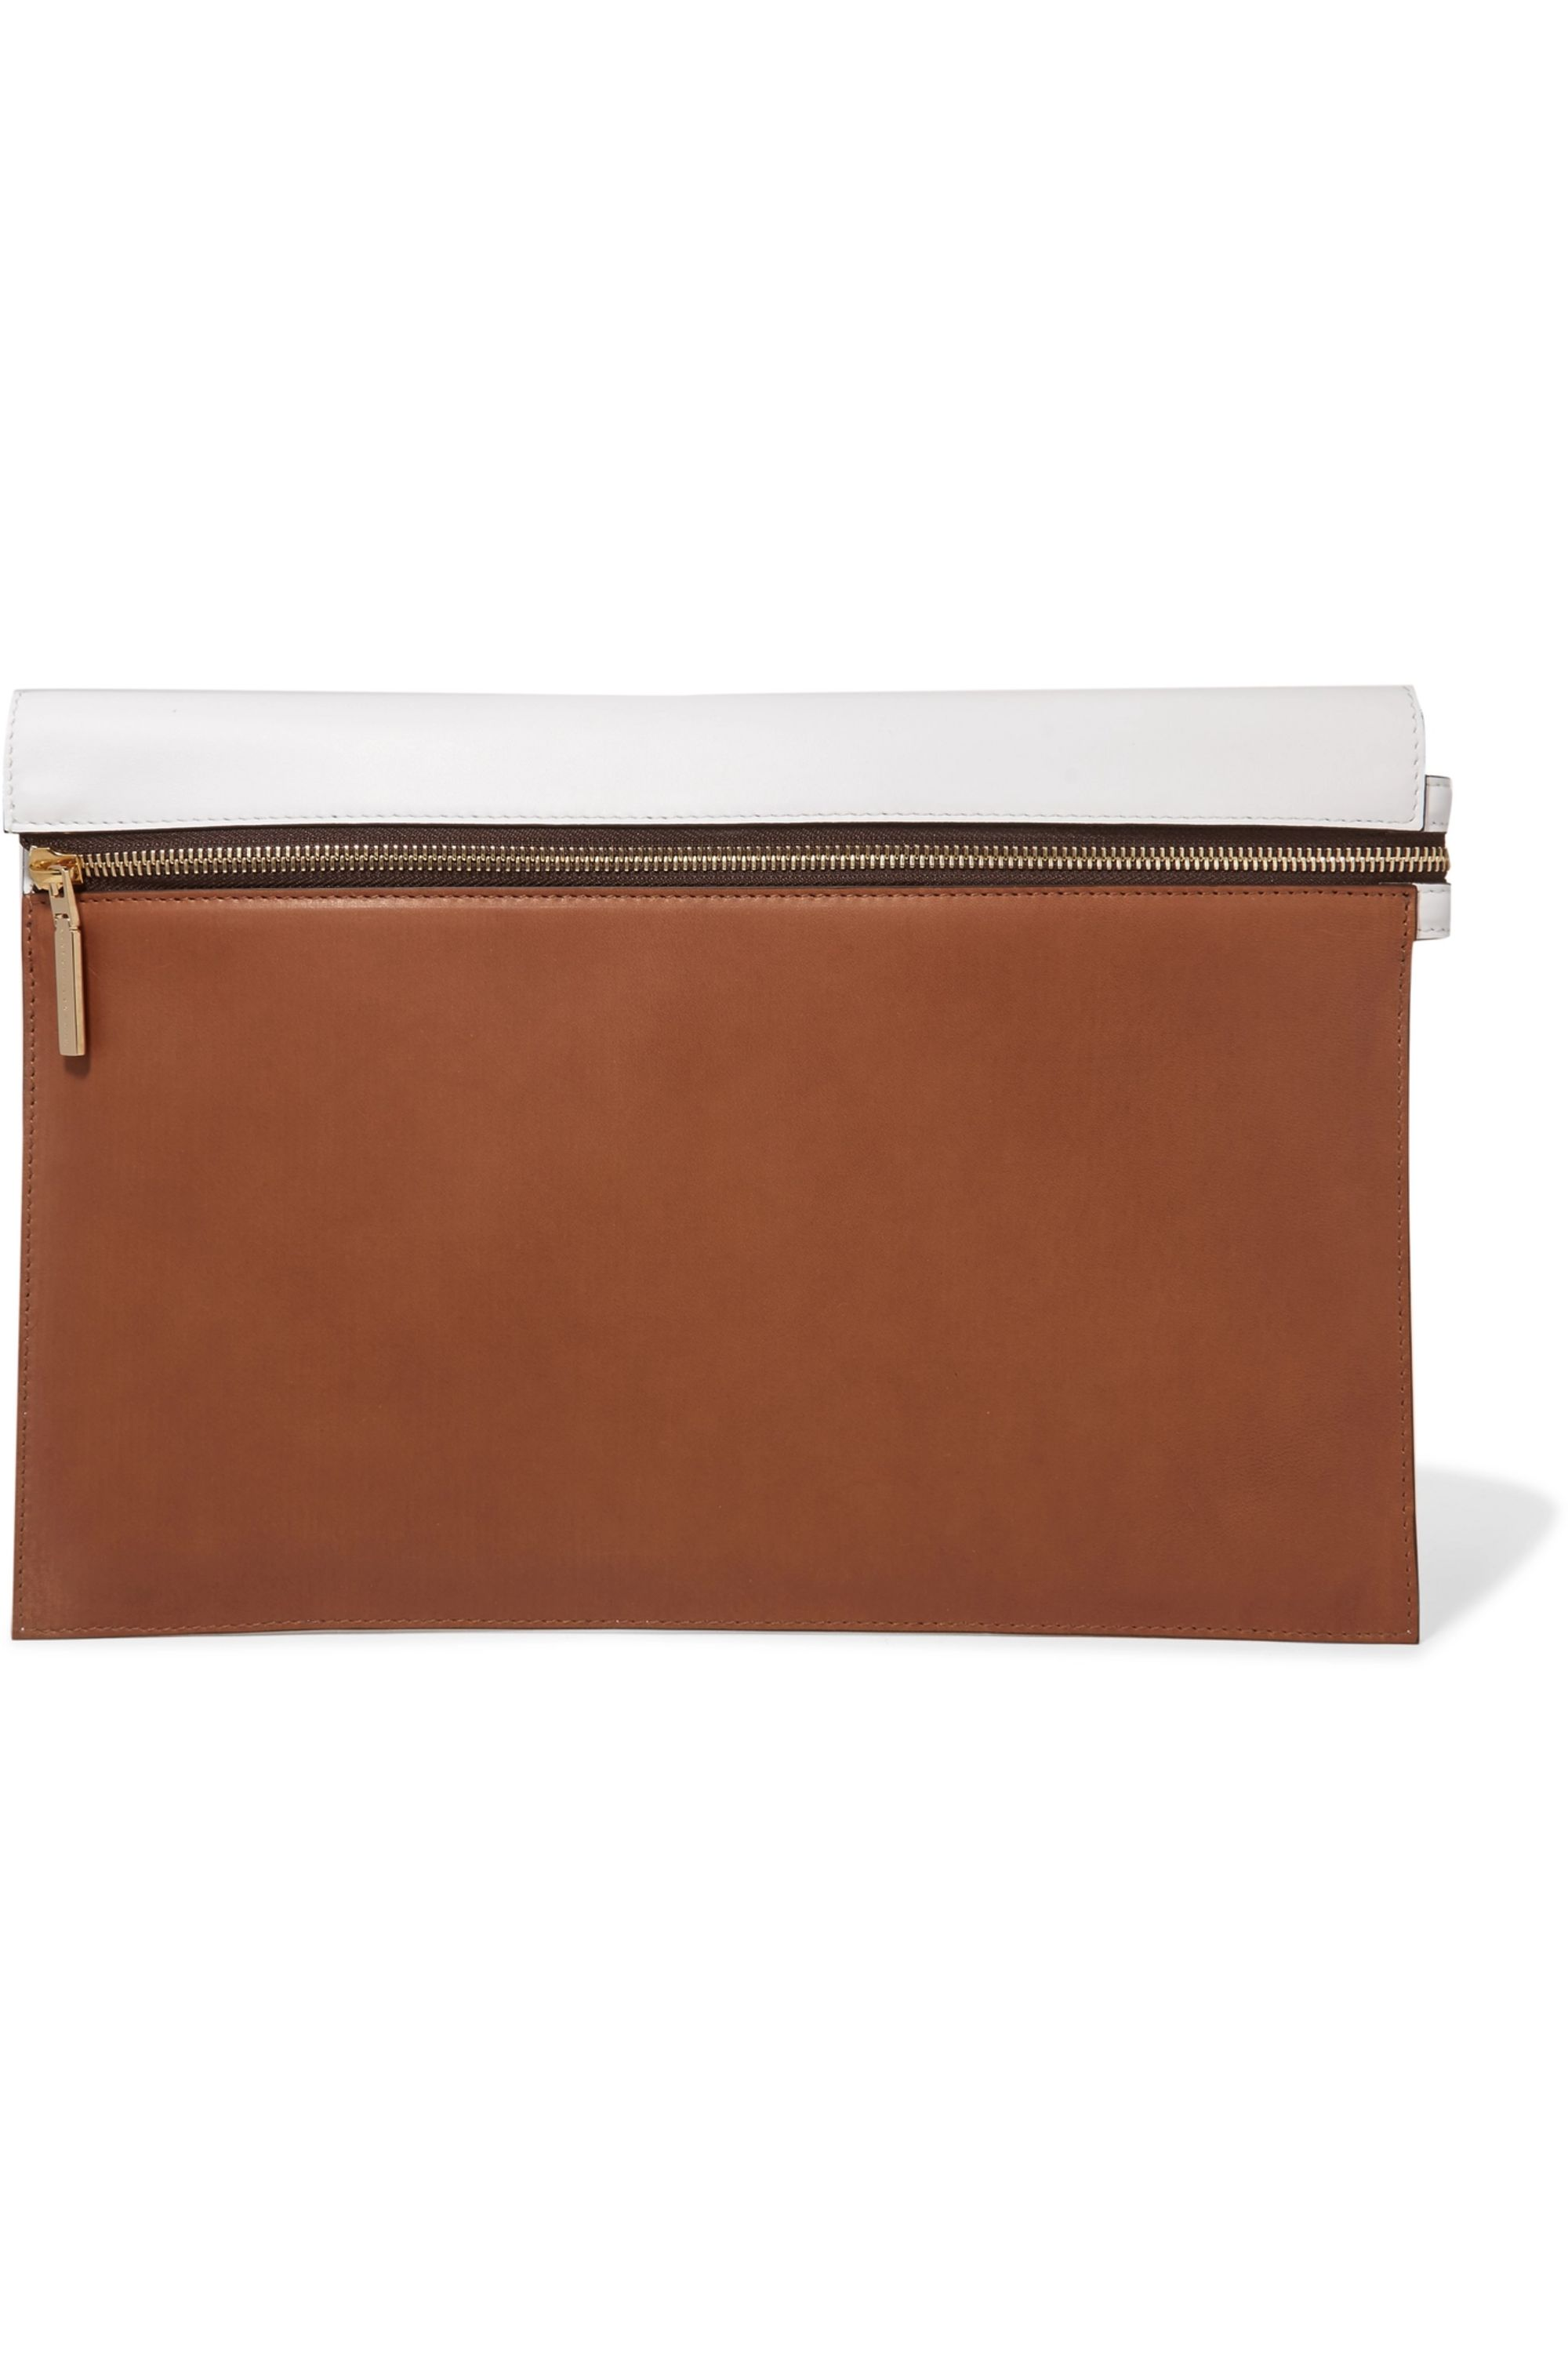 Victoria Beckham Two-tone leather pouch